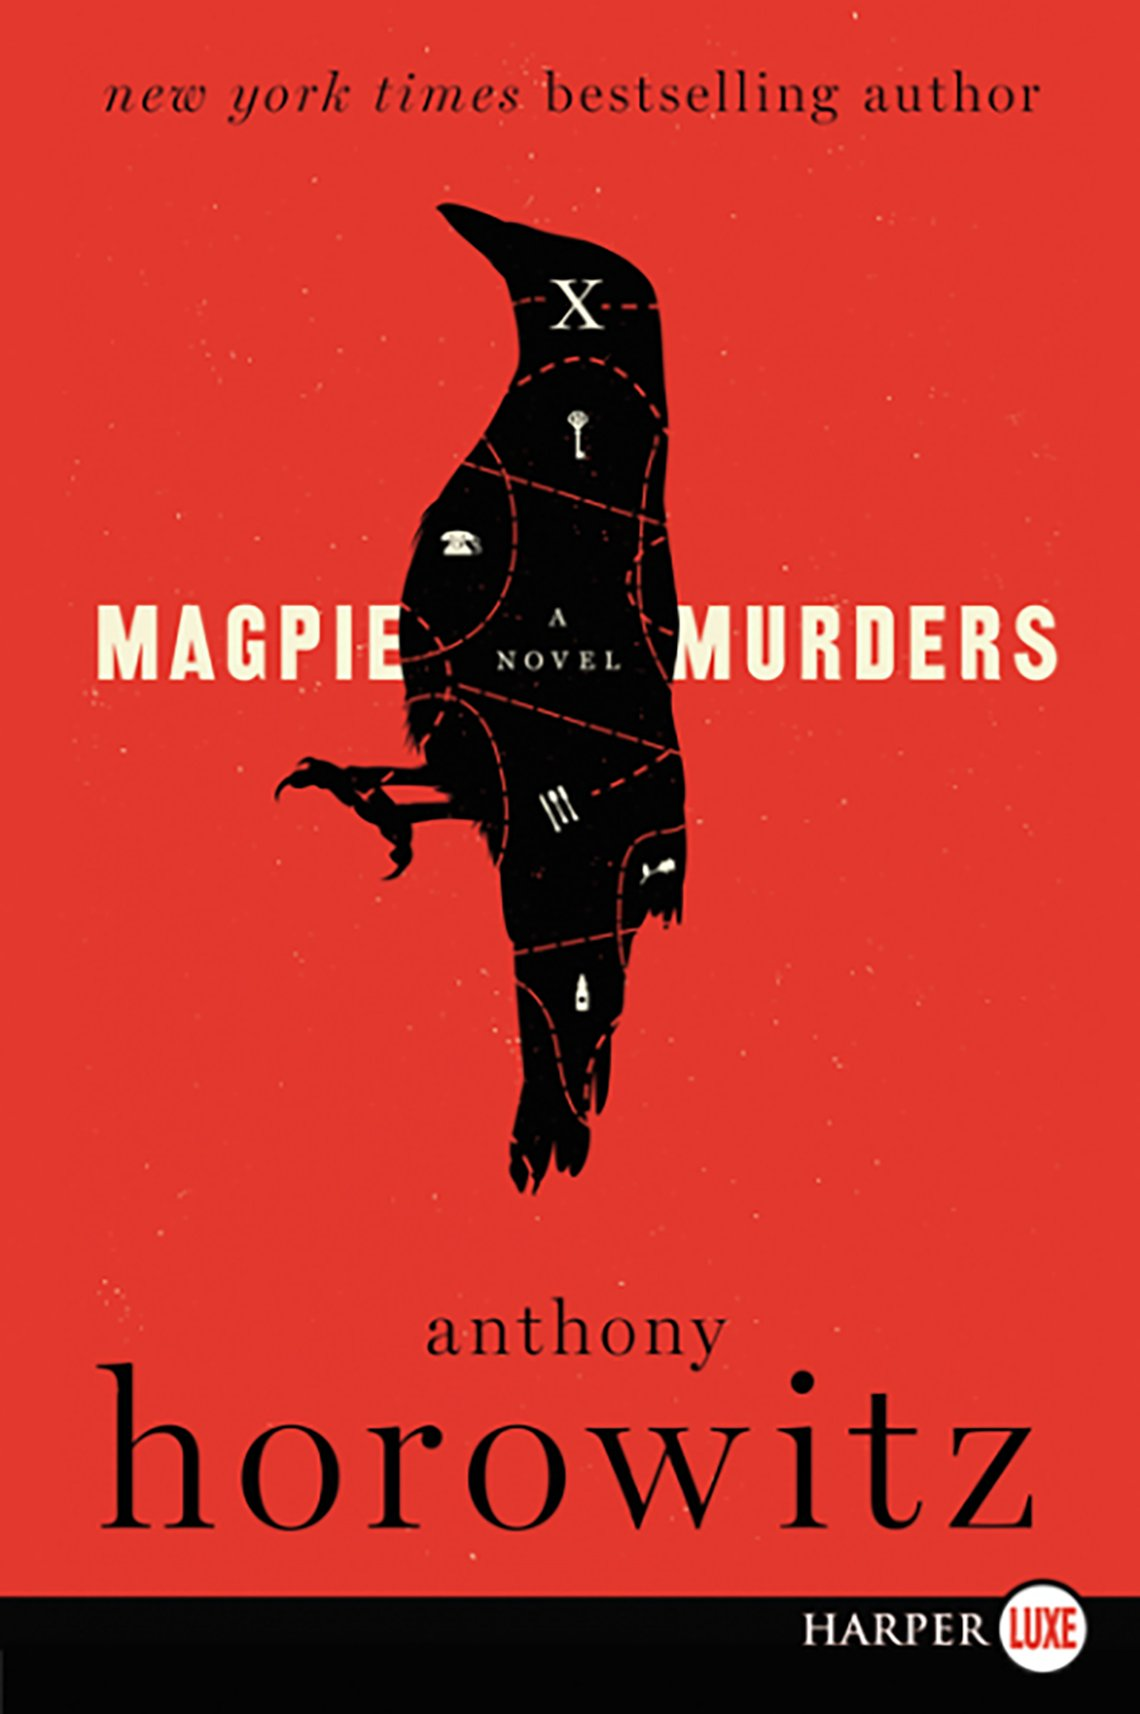 Magpie Murders, by Anthony Horowitz